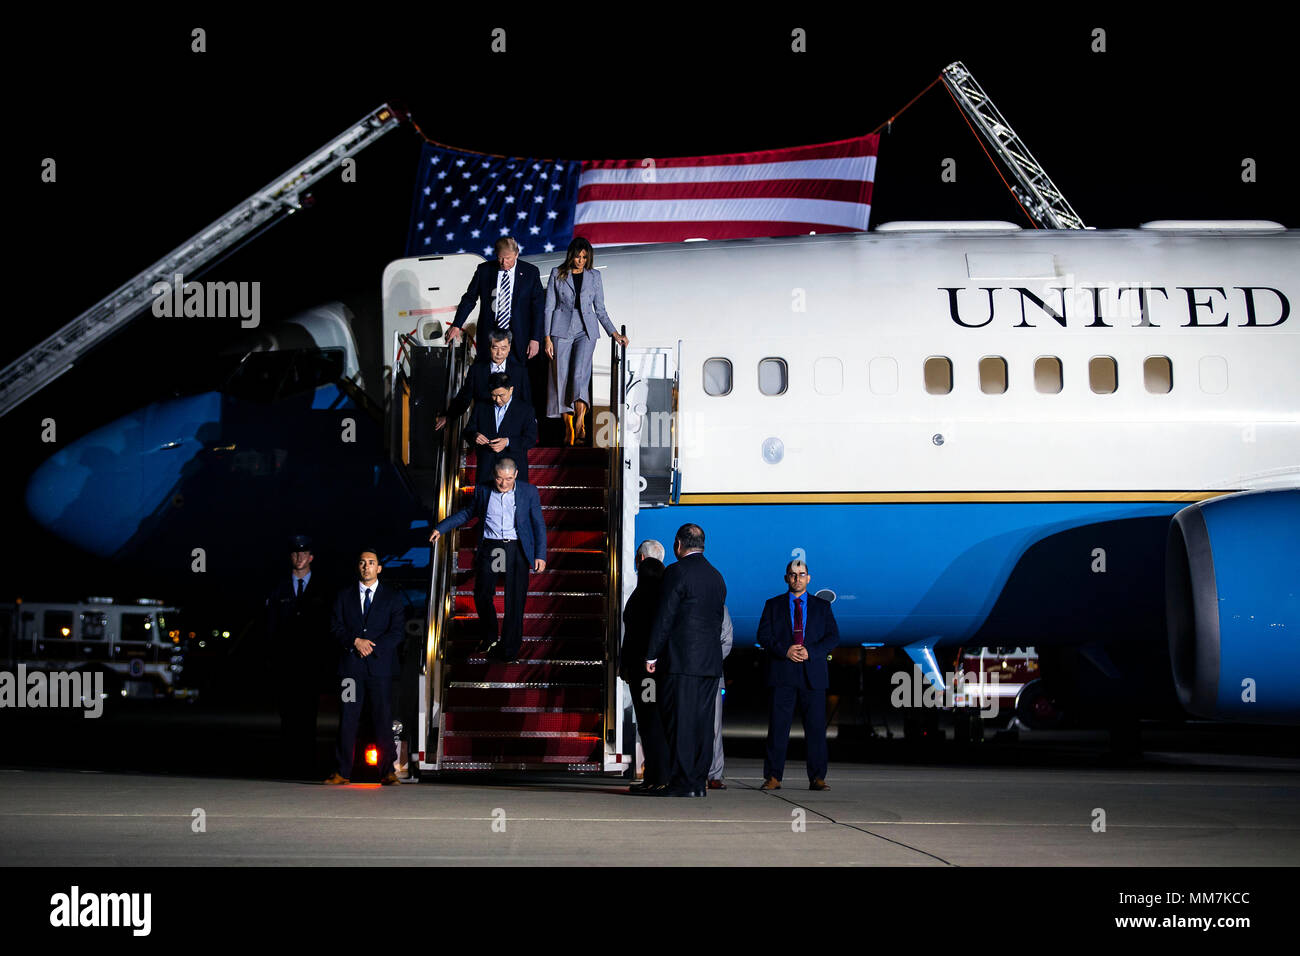 U.S. President Donald Trump and first lady Melania Trump arrive with three American detainees after their arrival from North Korea at Joint Base Andrews, Maryland, U.S., on Thursday, May 10, 2018. North Korea released the three U.S. citizens who had been detained for as long as two years, a goodwill gesture ahead of a planned summit between President Donald Trump and Kim Jong Un that's expected in the coming weeks. Credit: Al Drago/Pool via CNP /MediaPunch - Stock Image